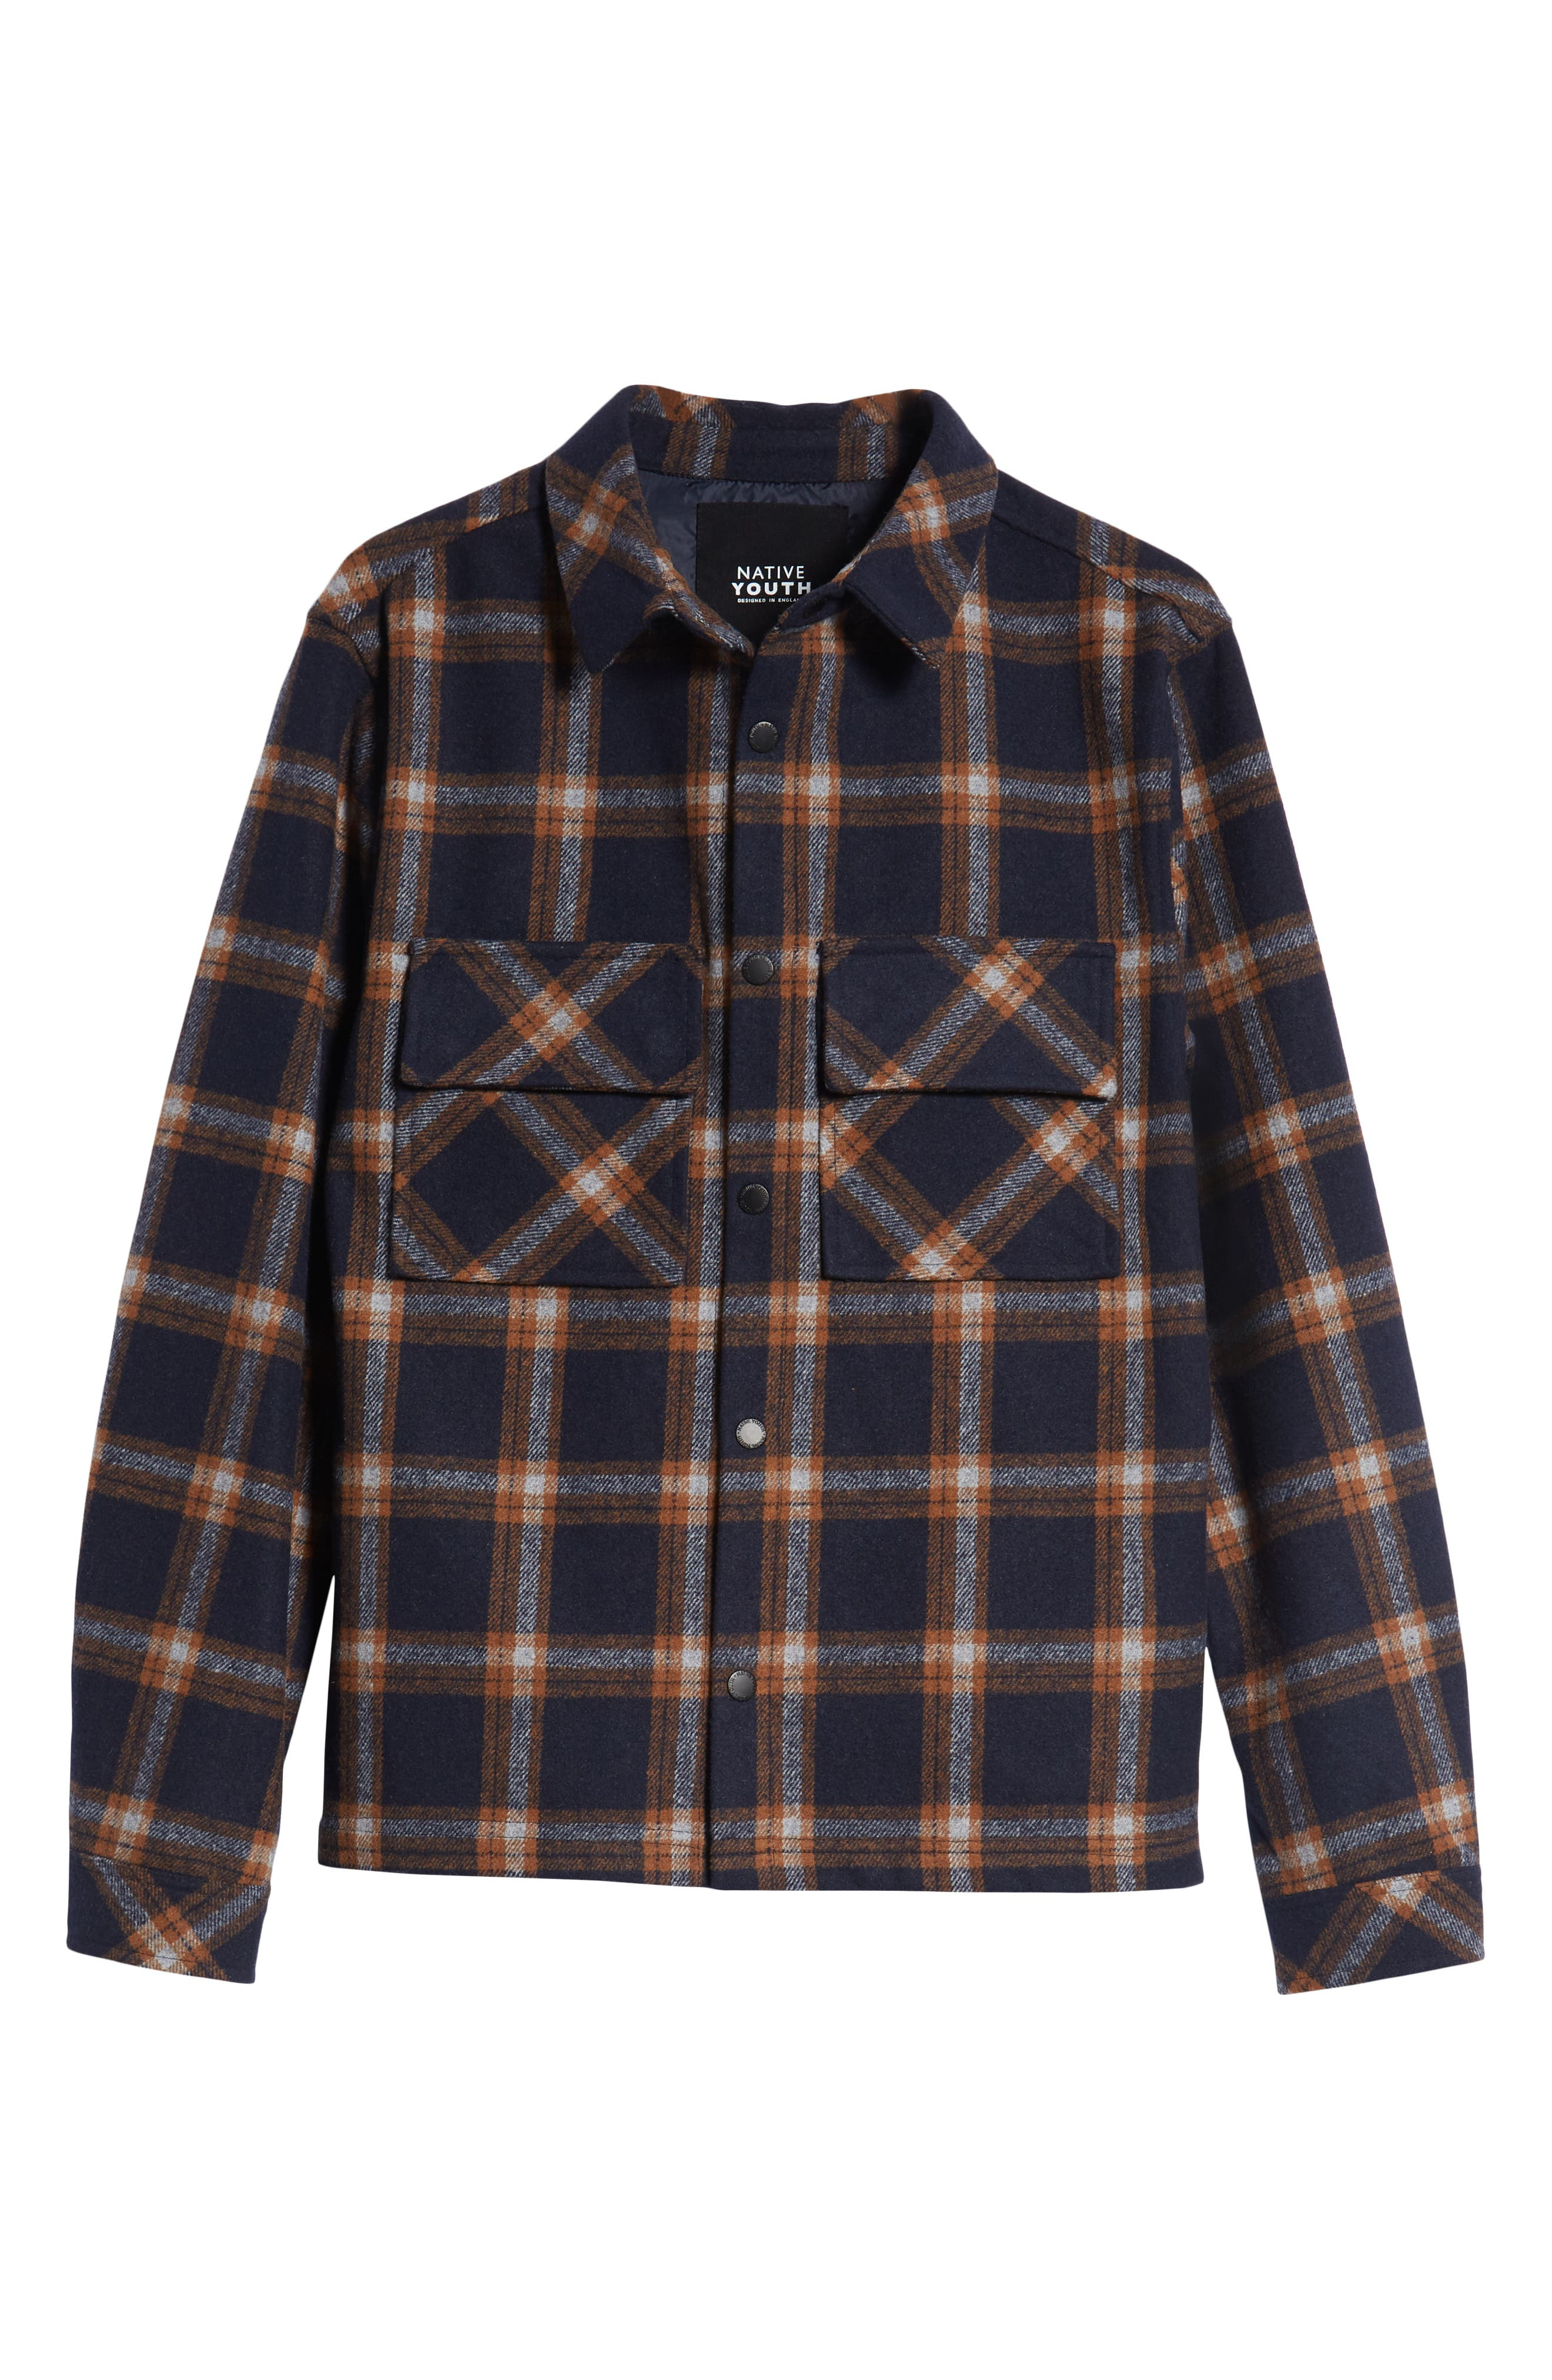 NATIVE YOUTH,                             Check Flannel Shirt,                             Alternate thumbnail 5, color,                             NAVY